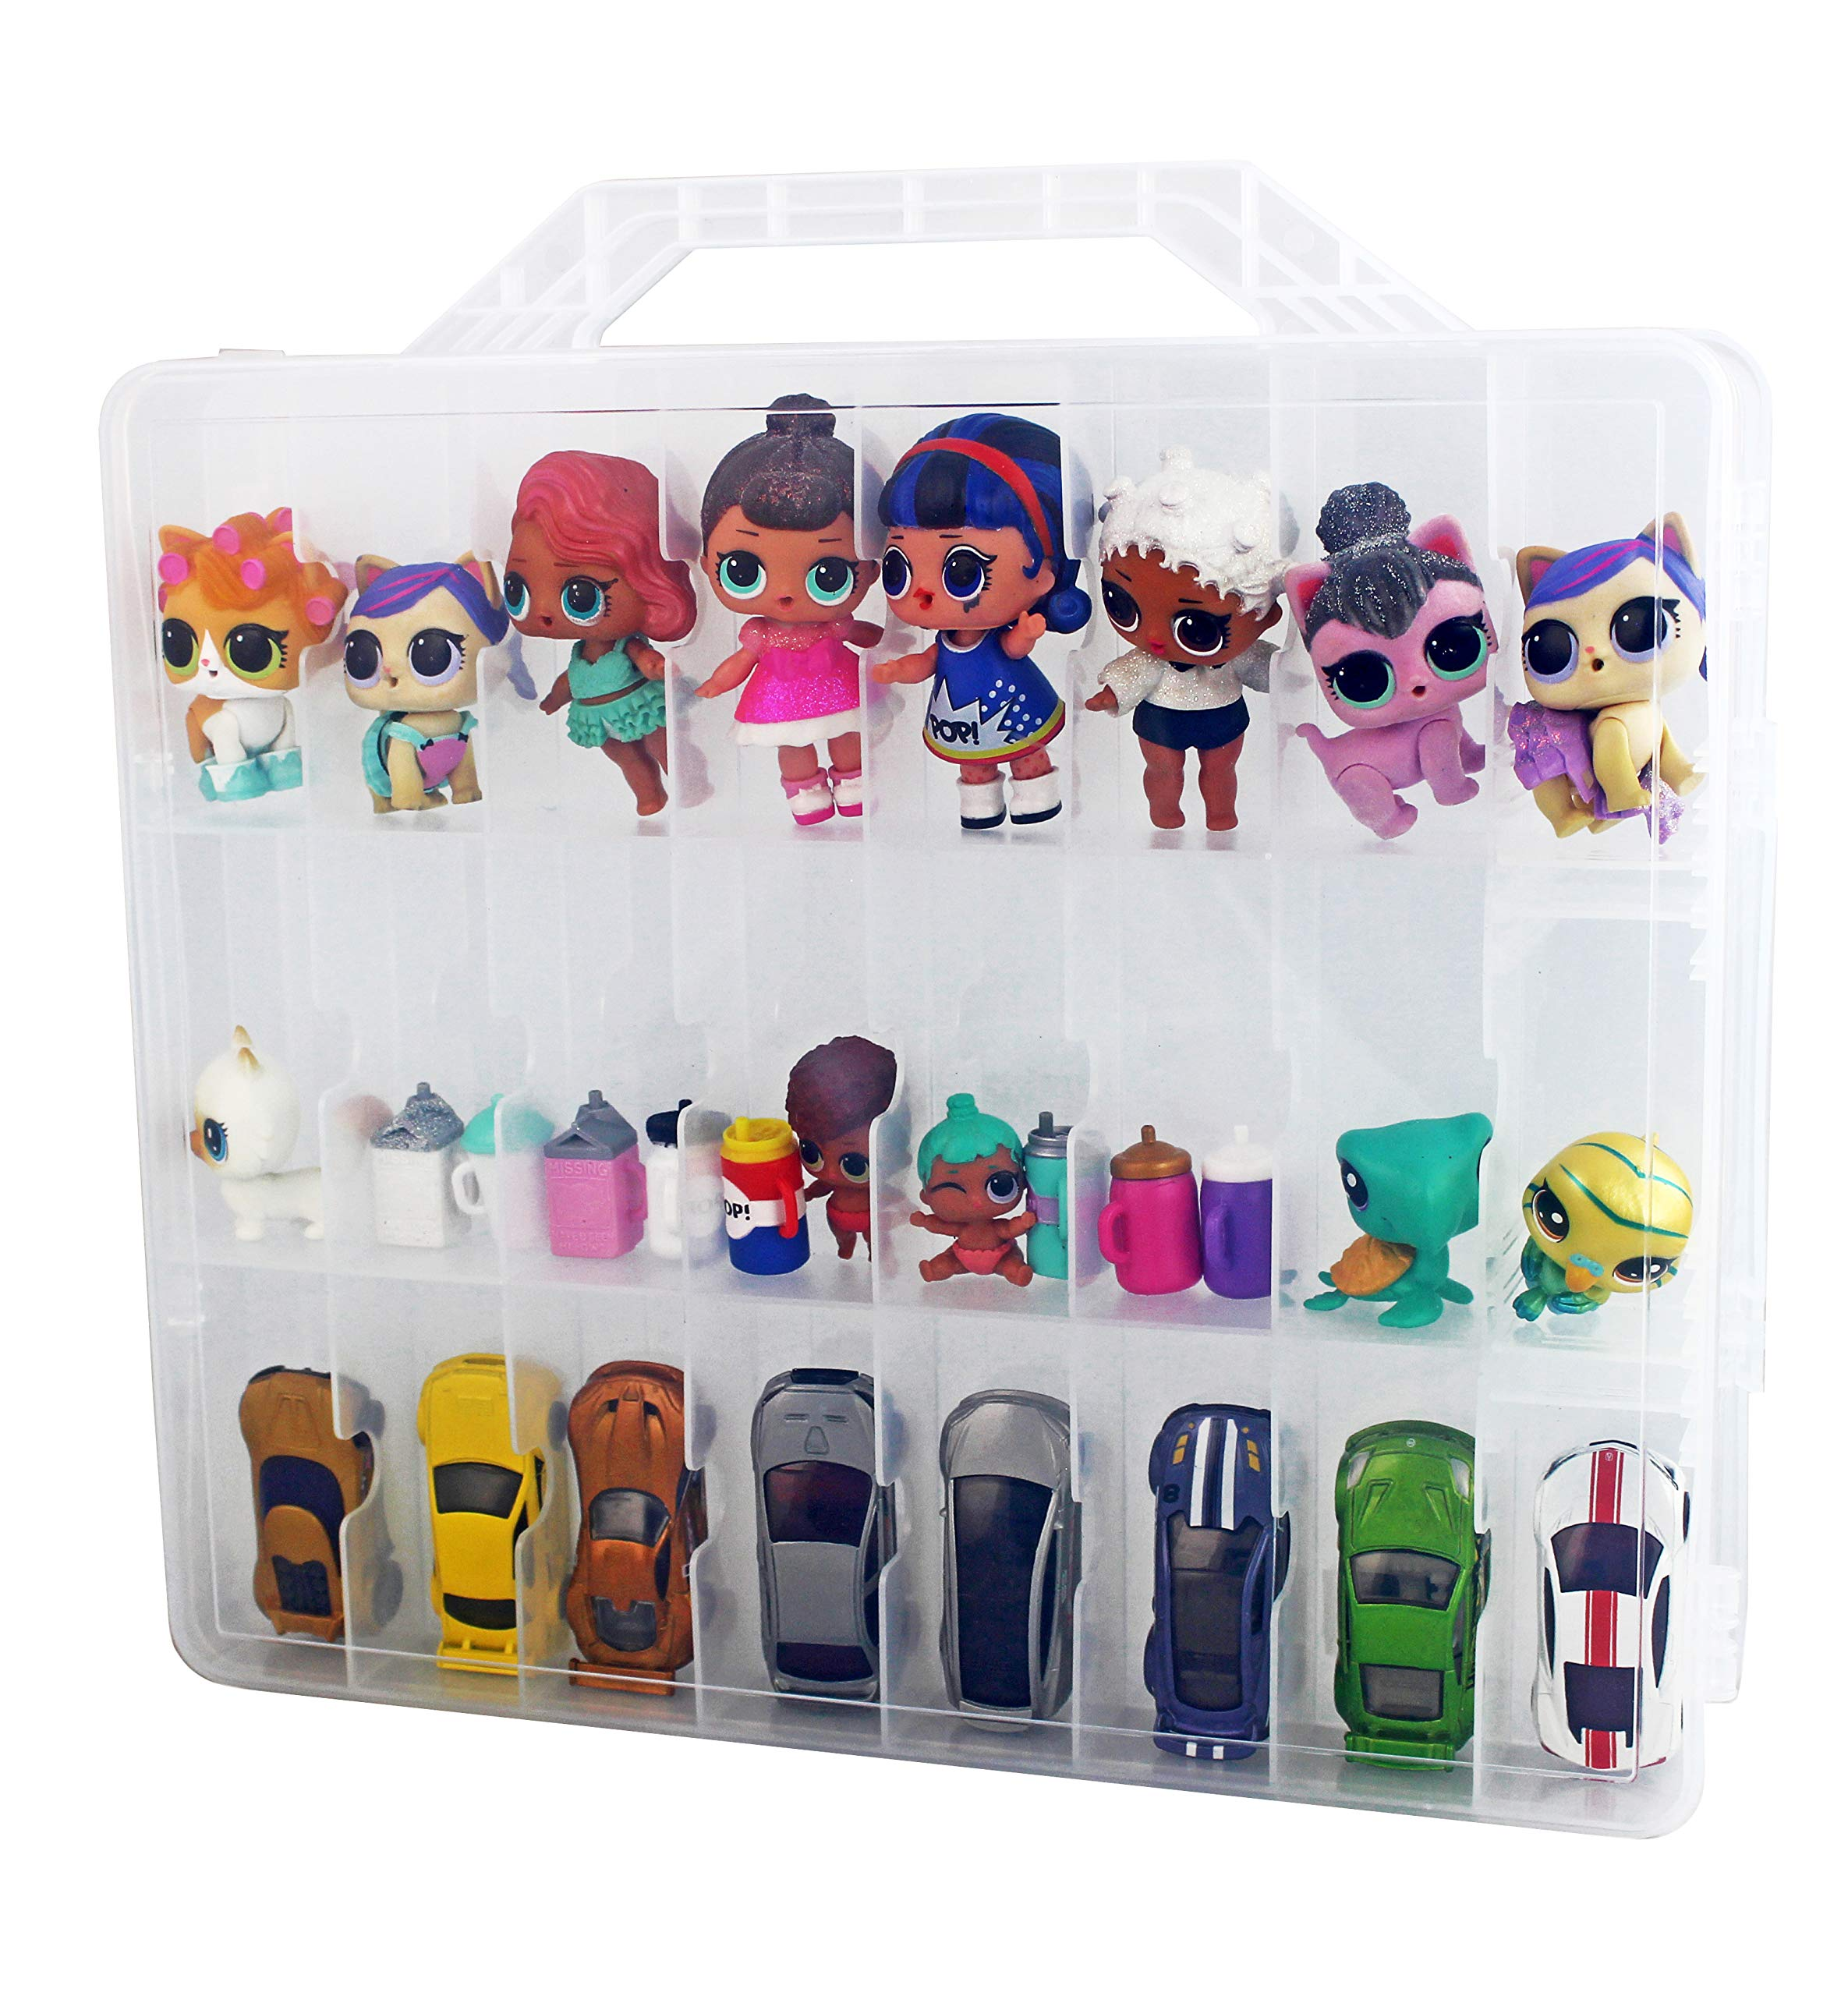 Bins & Things Toys Organizer Storage Case with 48 Compartments for LOL Surprise Dolls, Hot Wheels, LPS Figures and Shopkins